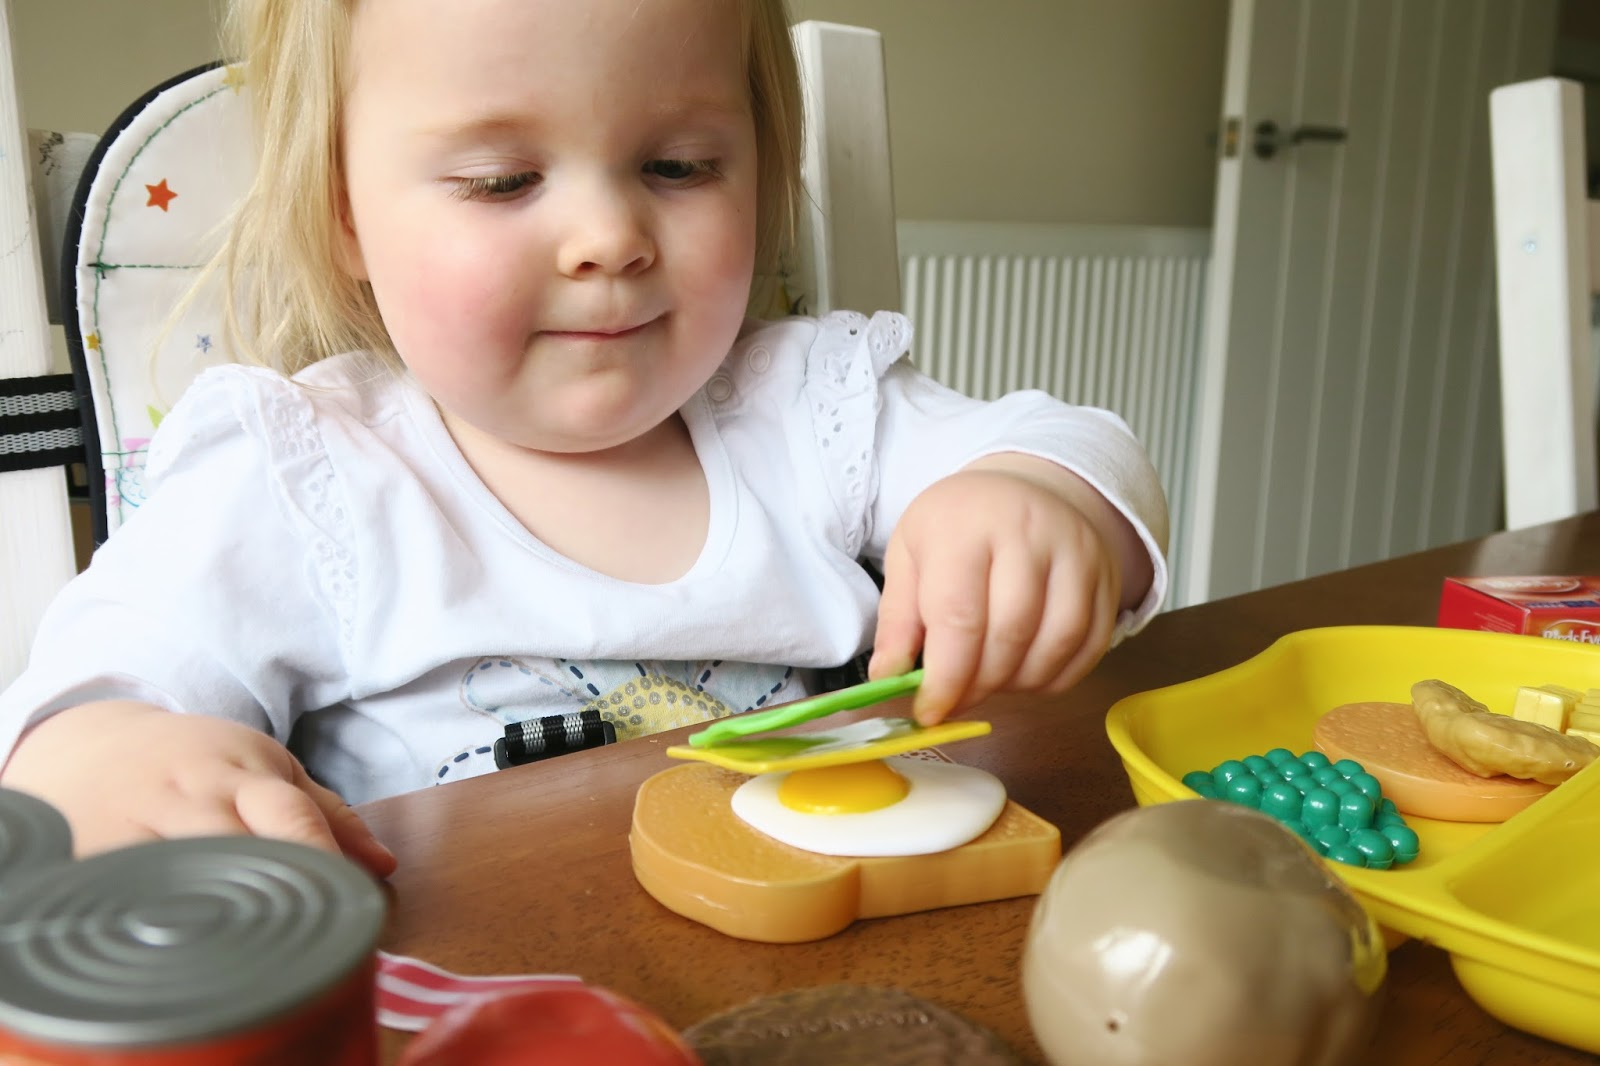 Encourage your child to explore role-playing and pretend play with this grocery set from Casdon